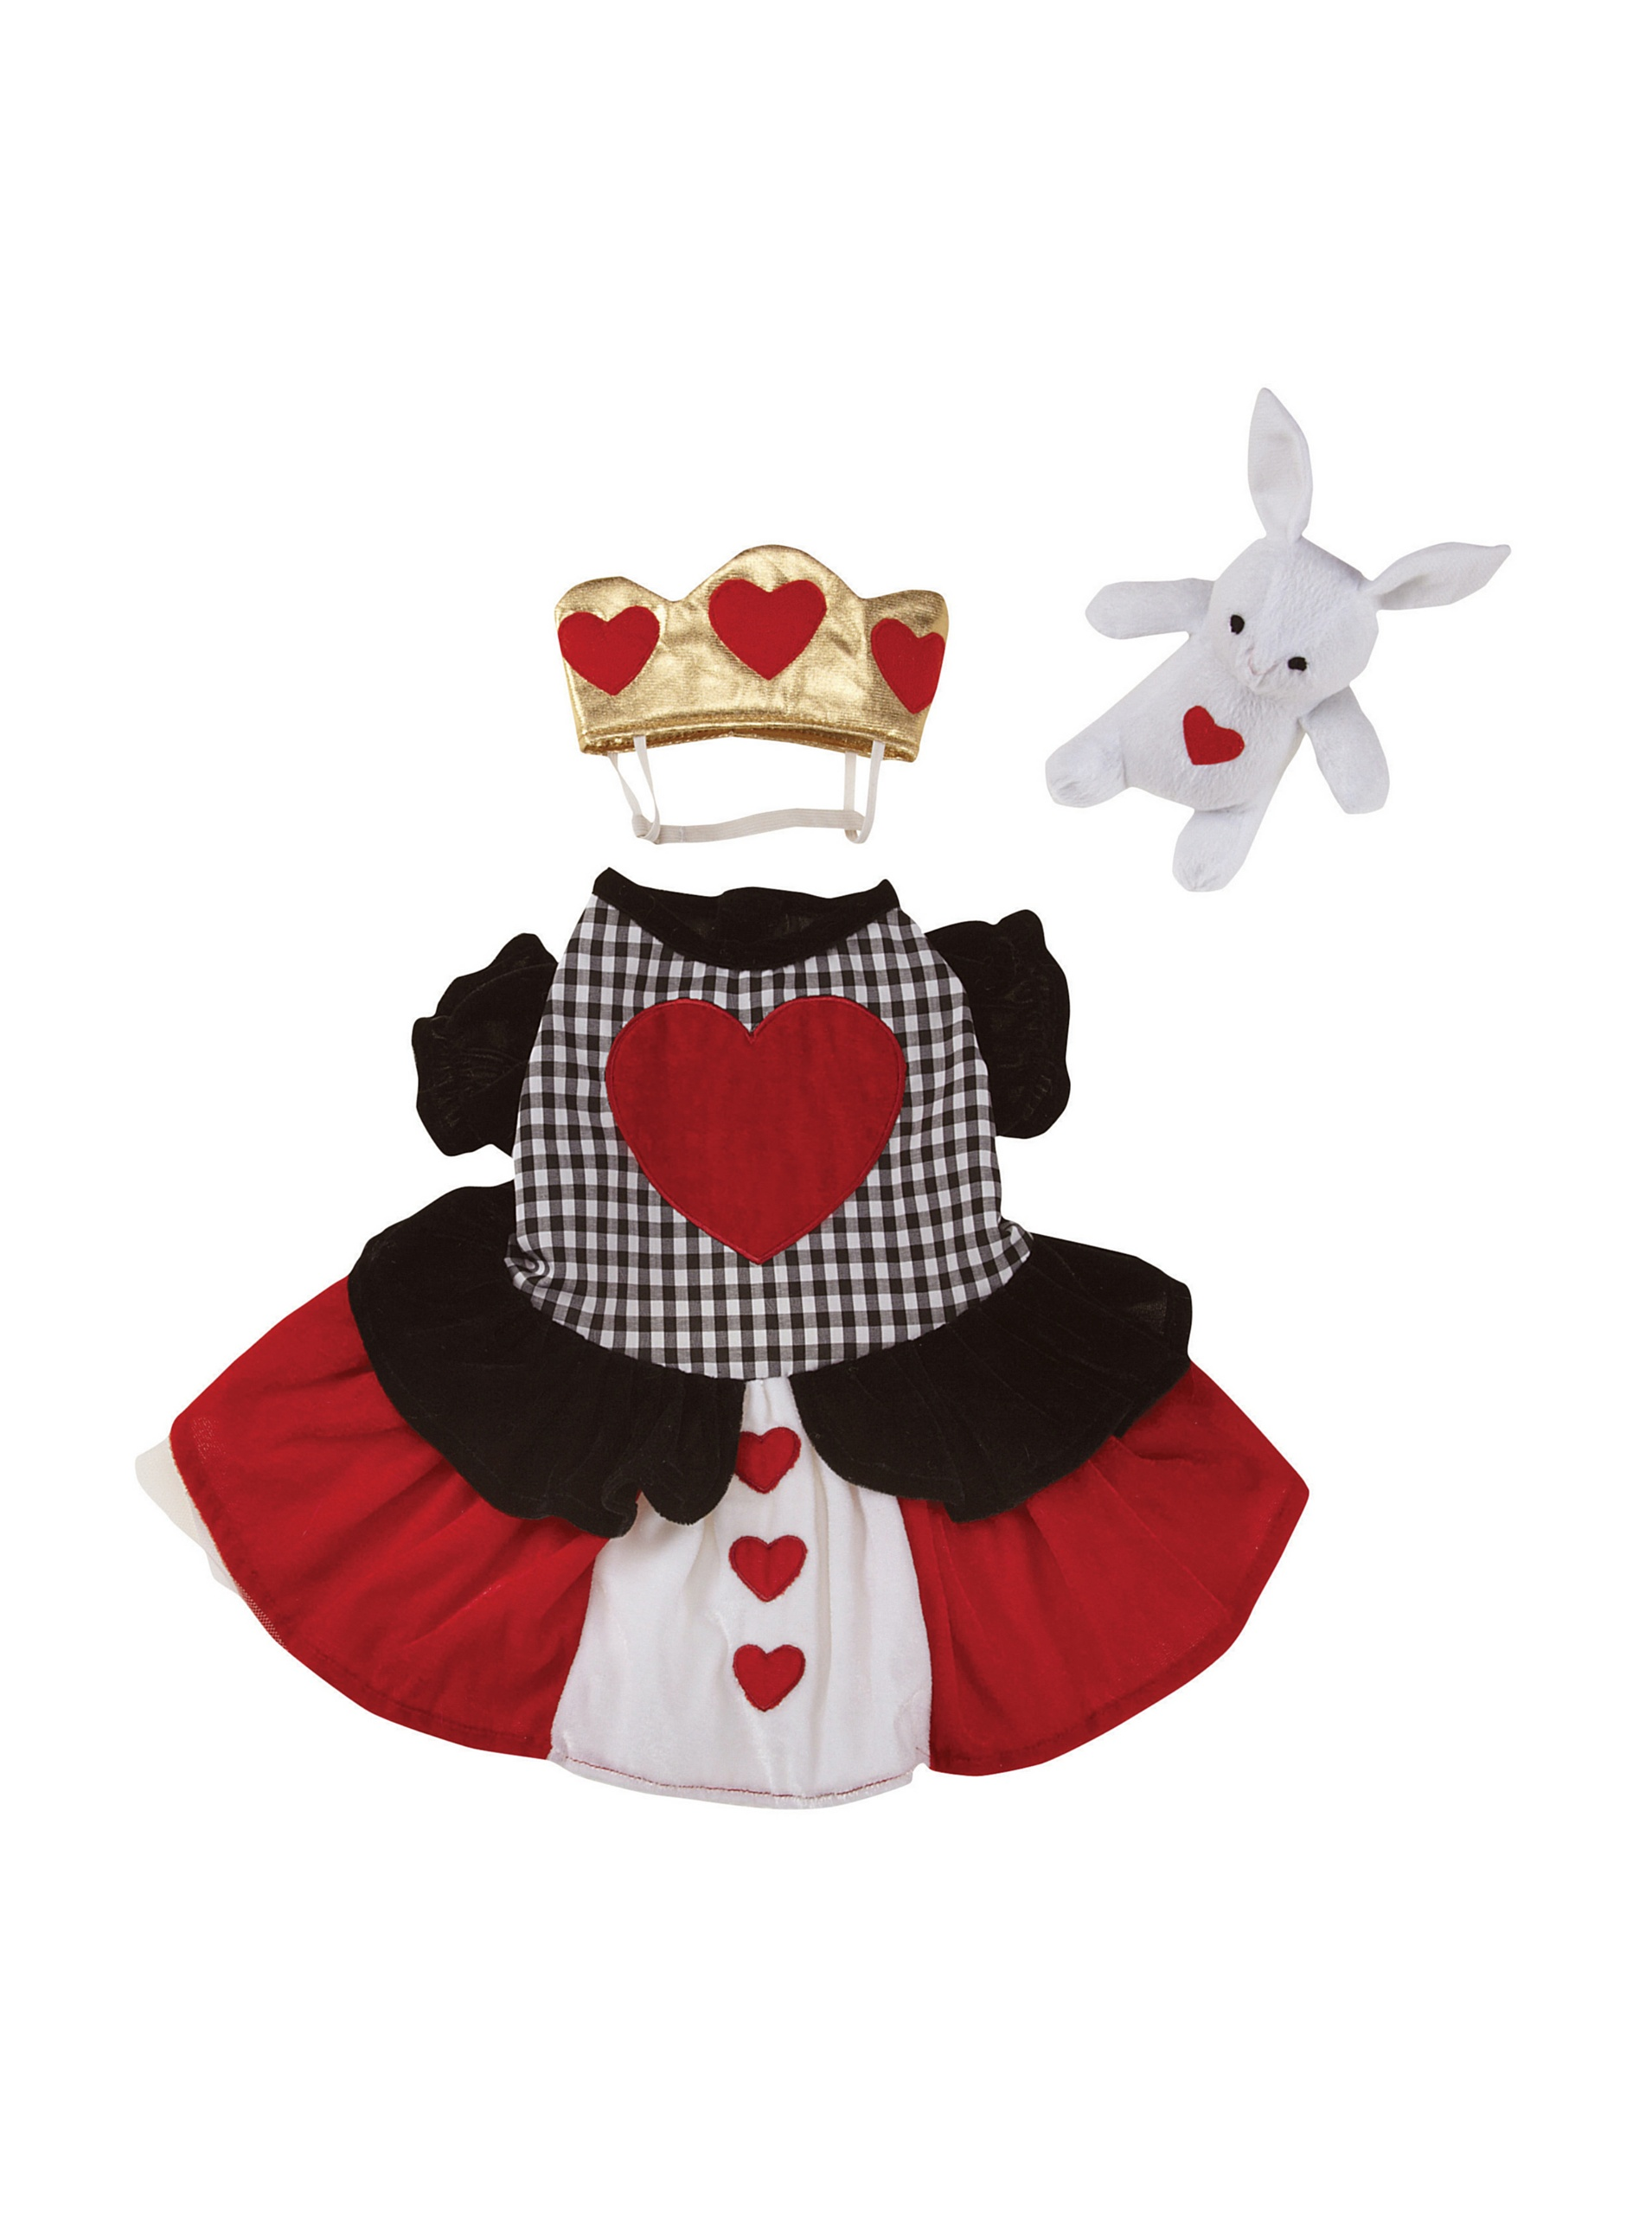 Casual Canine Queen Of Hearts Alice In Wonderland Type Halloween Dog Costume with White Rabbit Bunny Toy X-Large